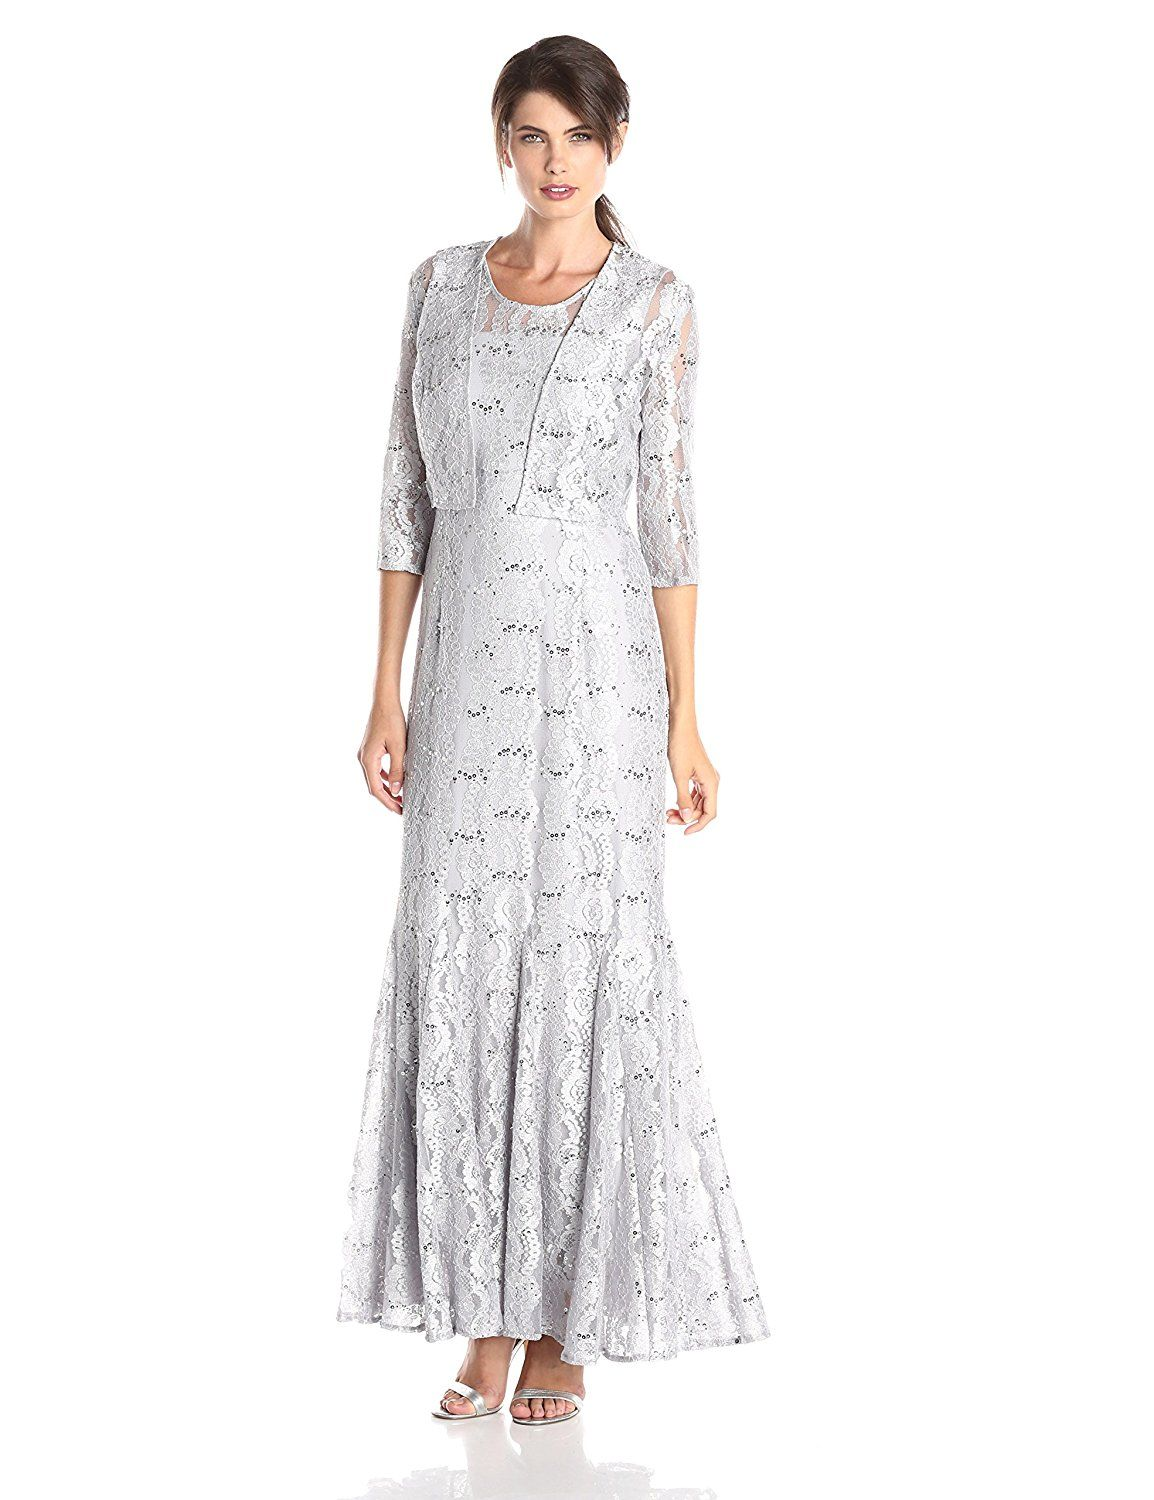 Alex evenings womenus long gown with lacepaneled skirt and bolero